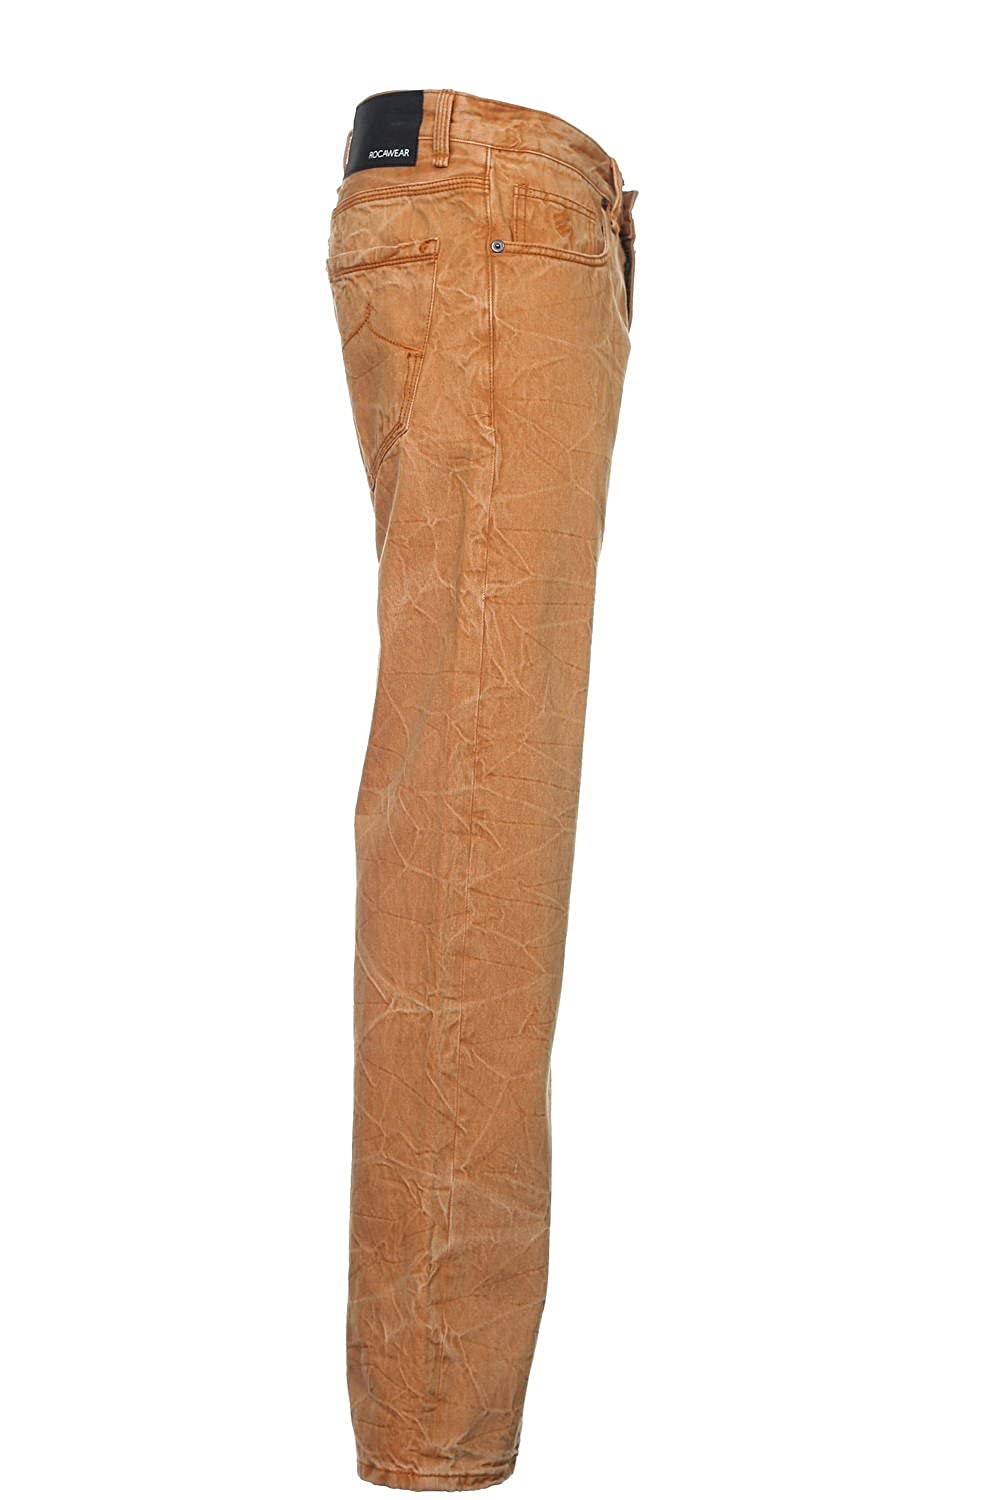 Rocawear Interior Color Weave Mens Orange Distressed Straight Leg Jeans